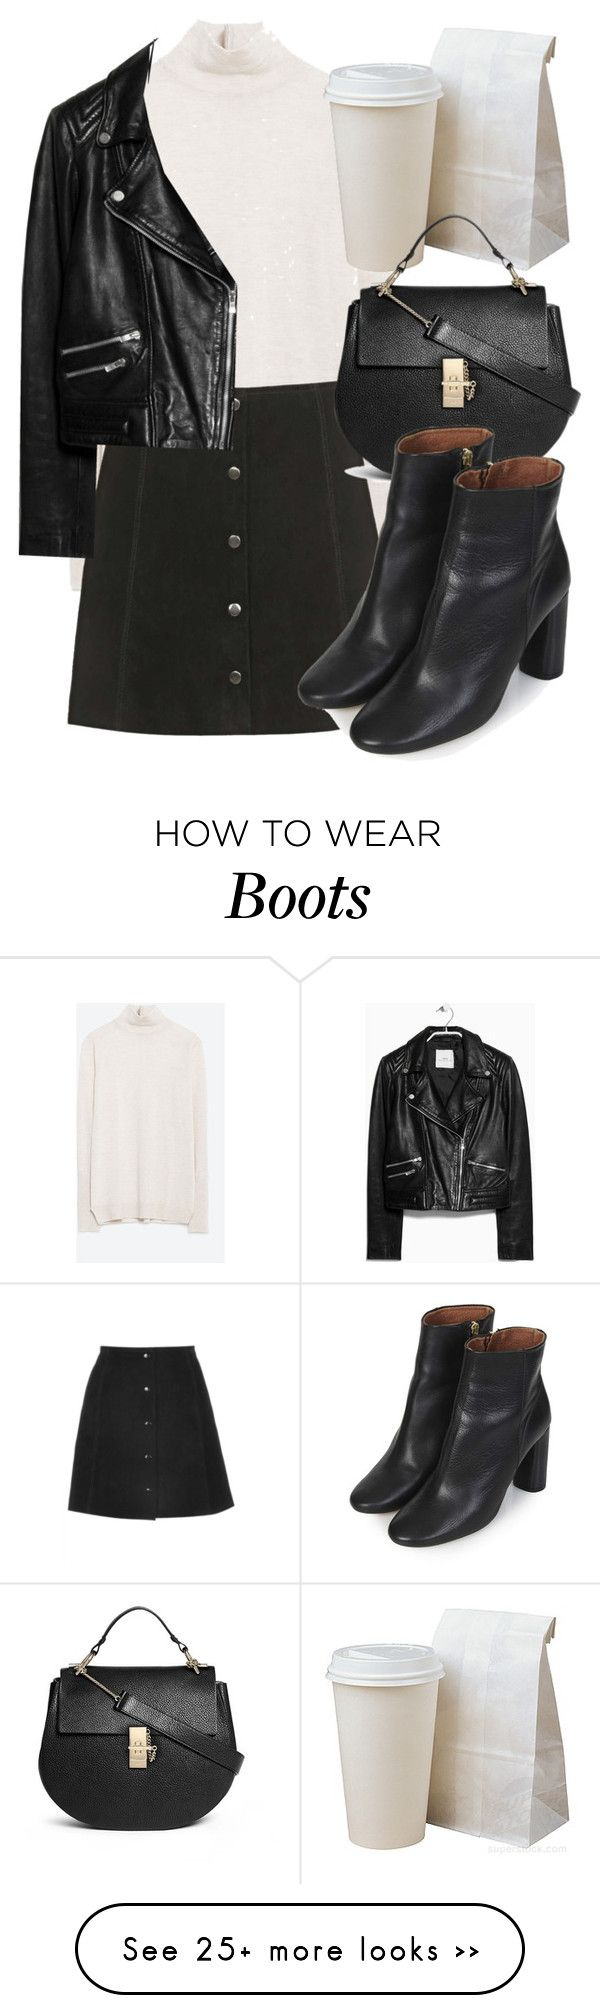 Untitled #4415 by laurenmboot on Polyvore featuring Zara, Topshop, MANGO and Chloé